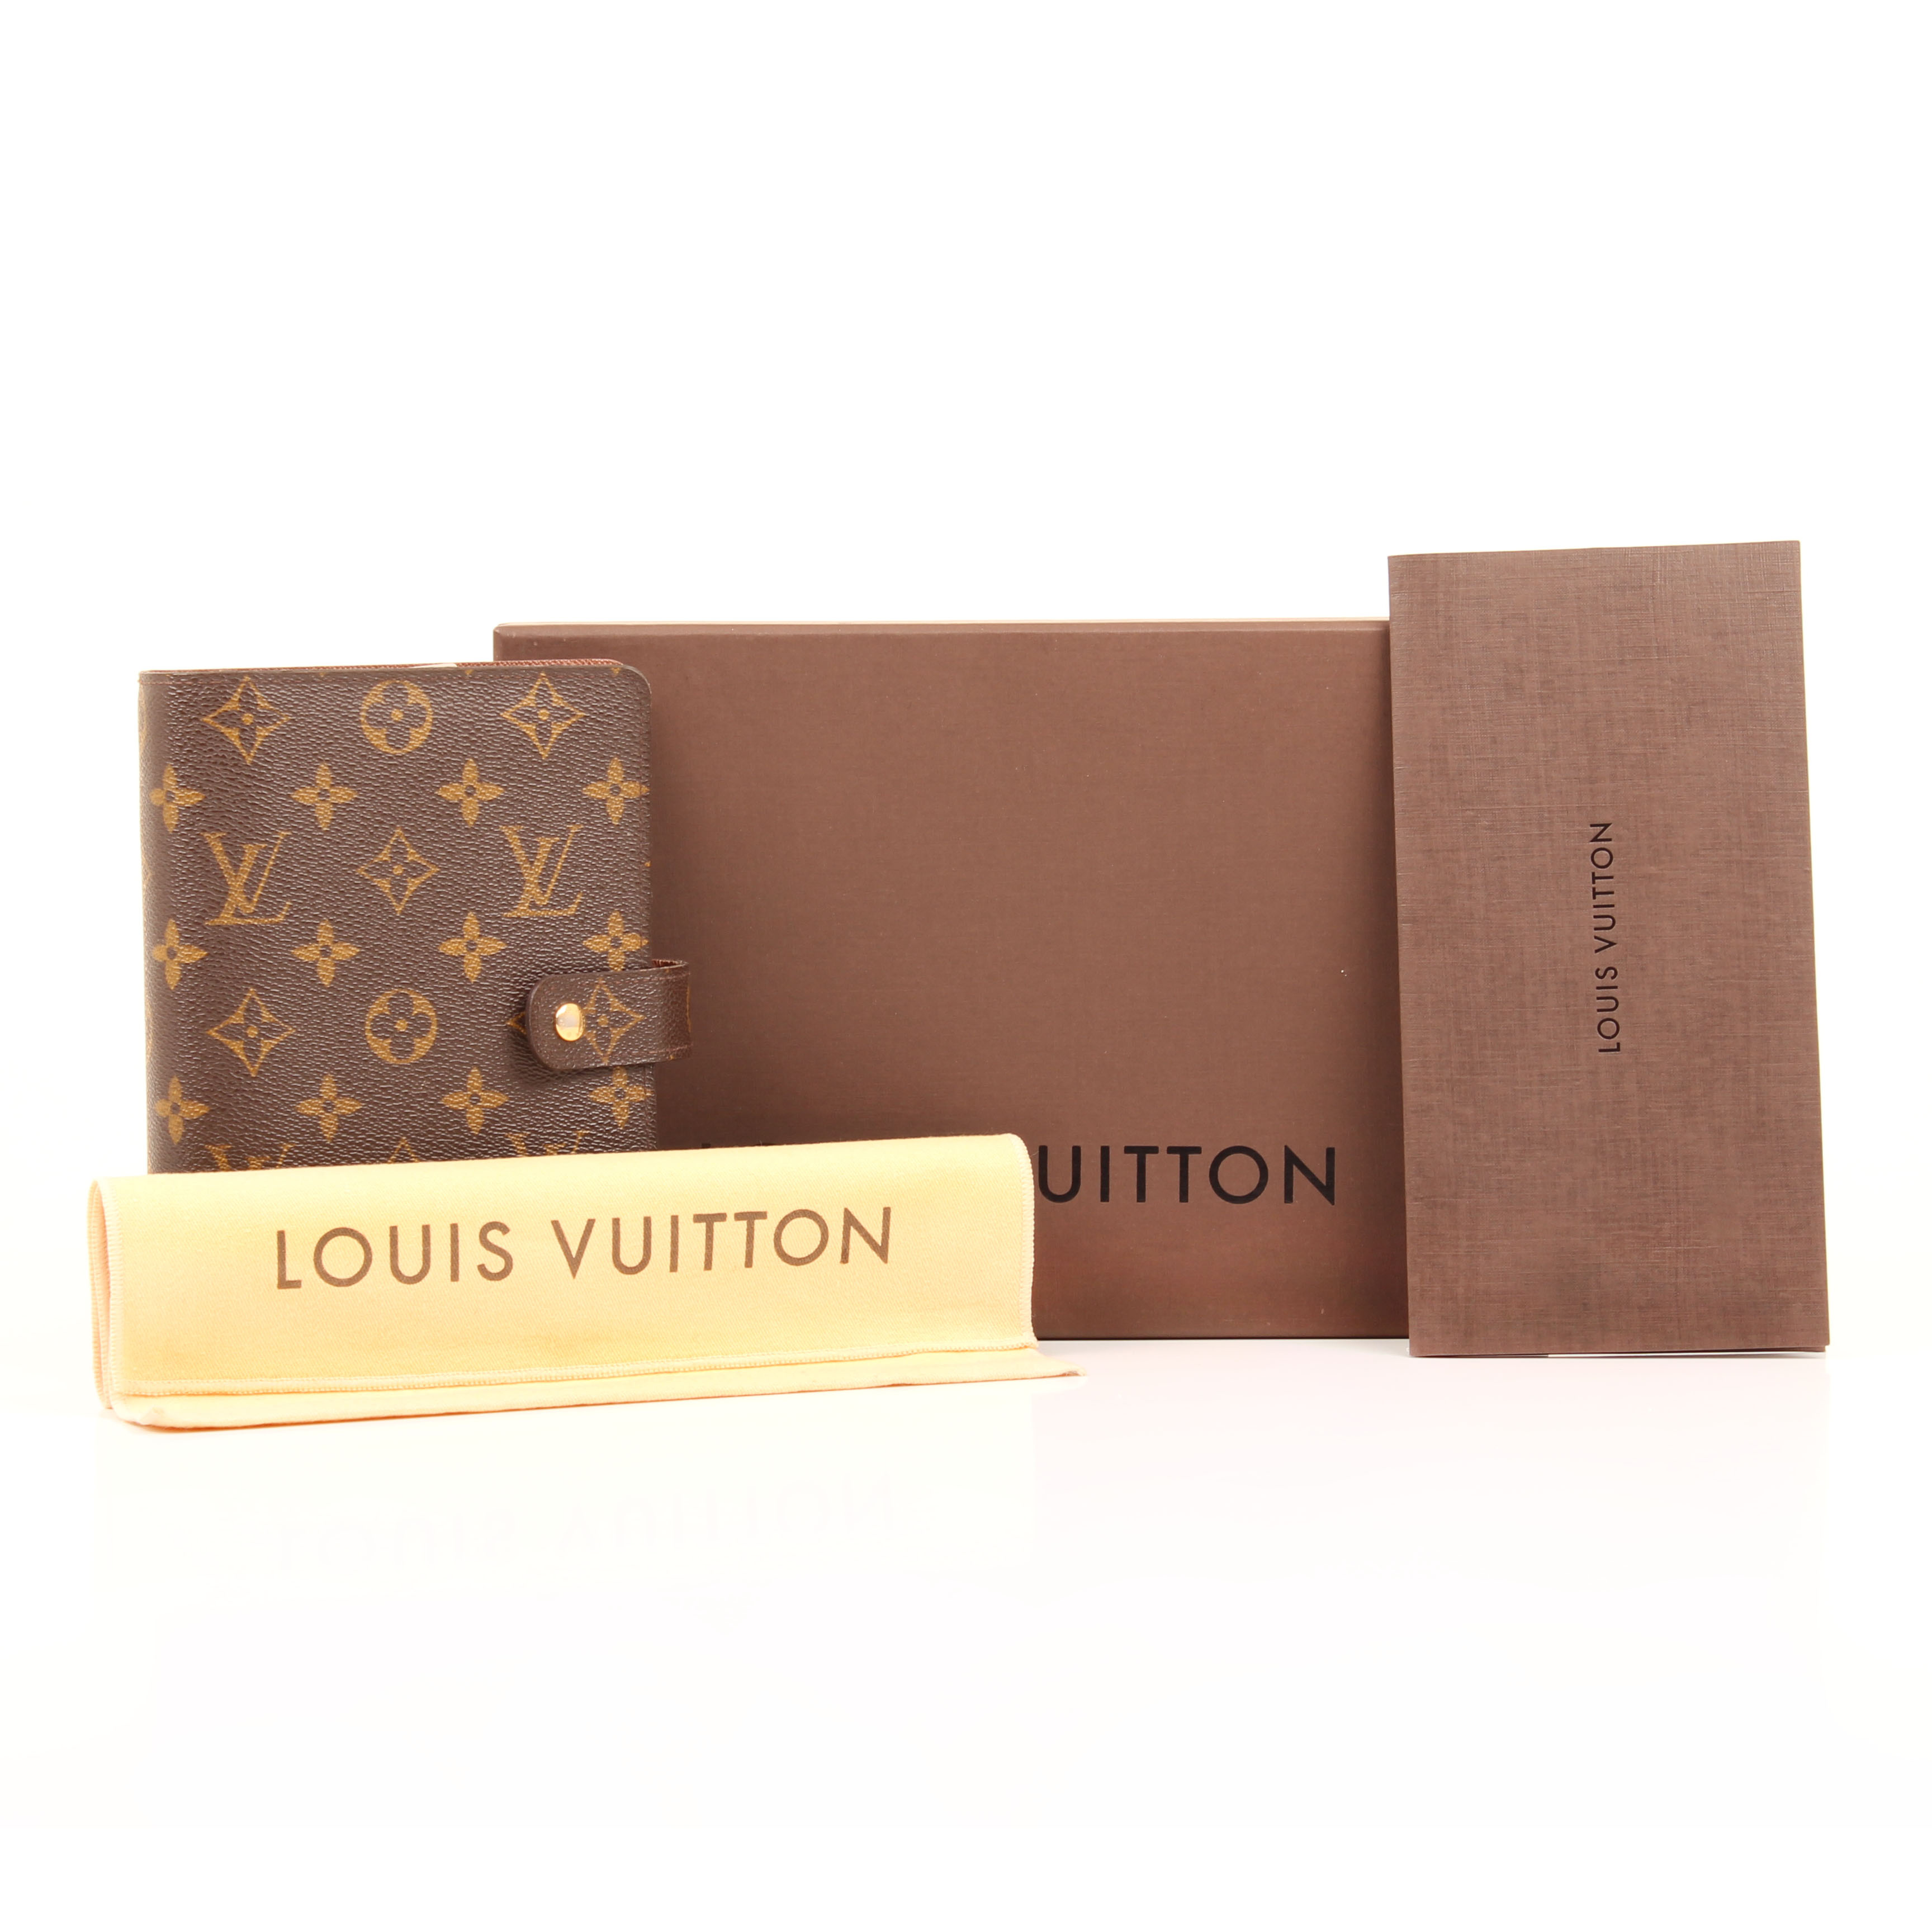 louis vuitton agenda cover medium ring monogram box dustbag